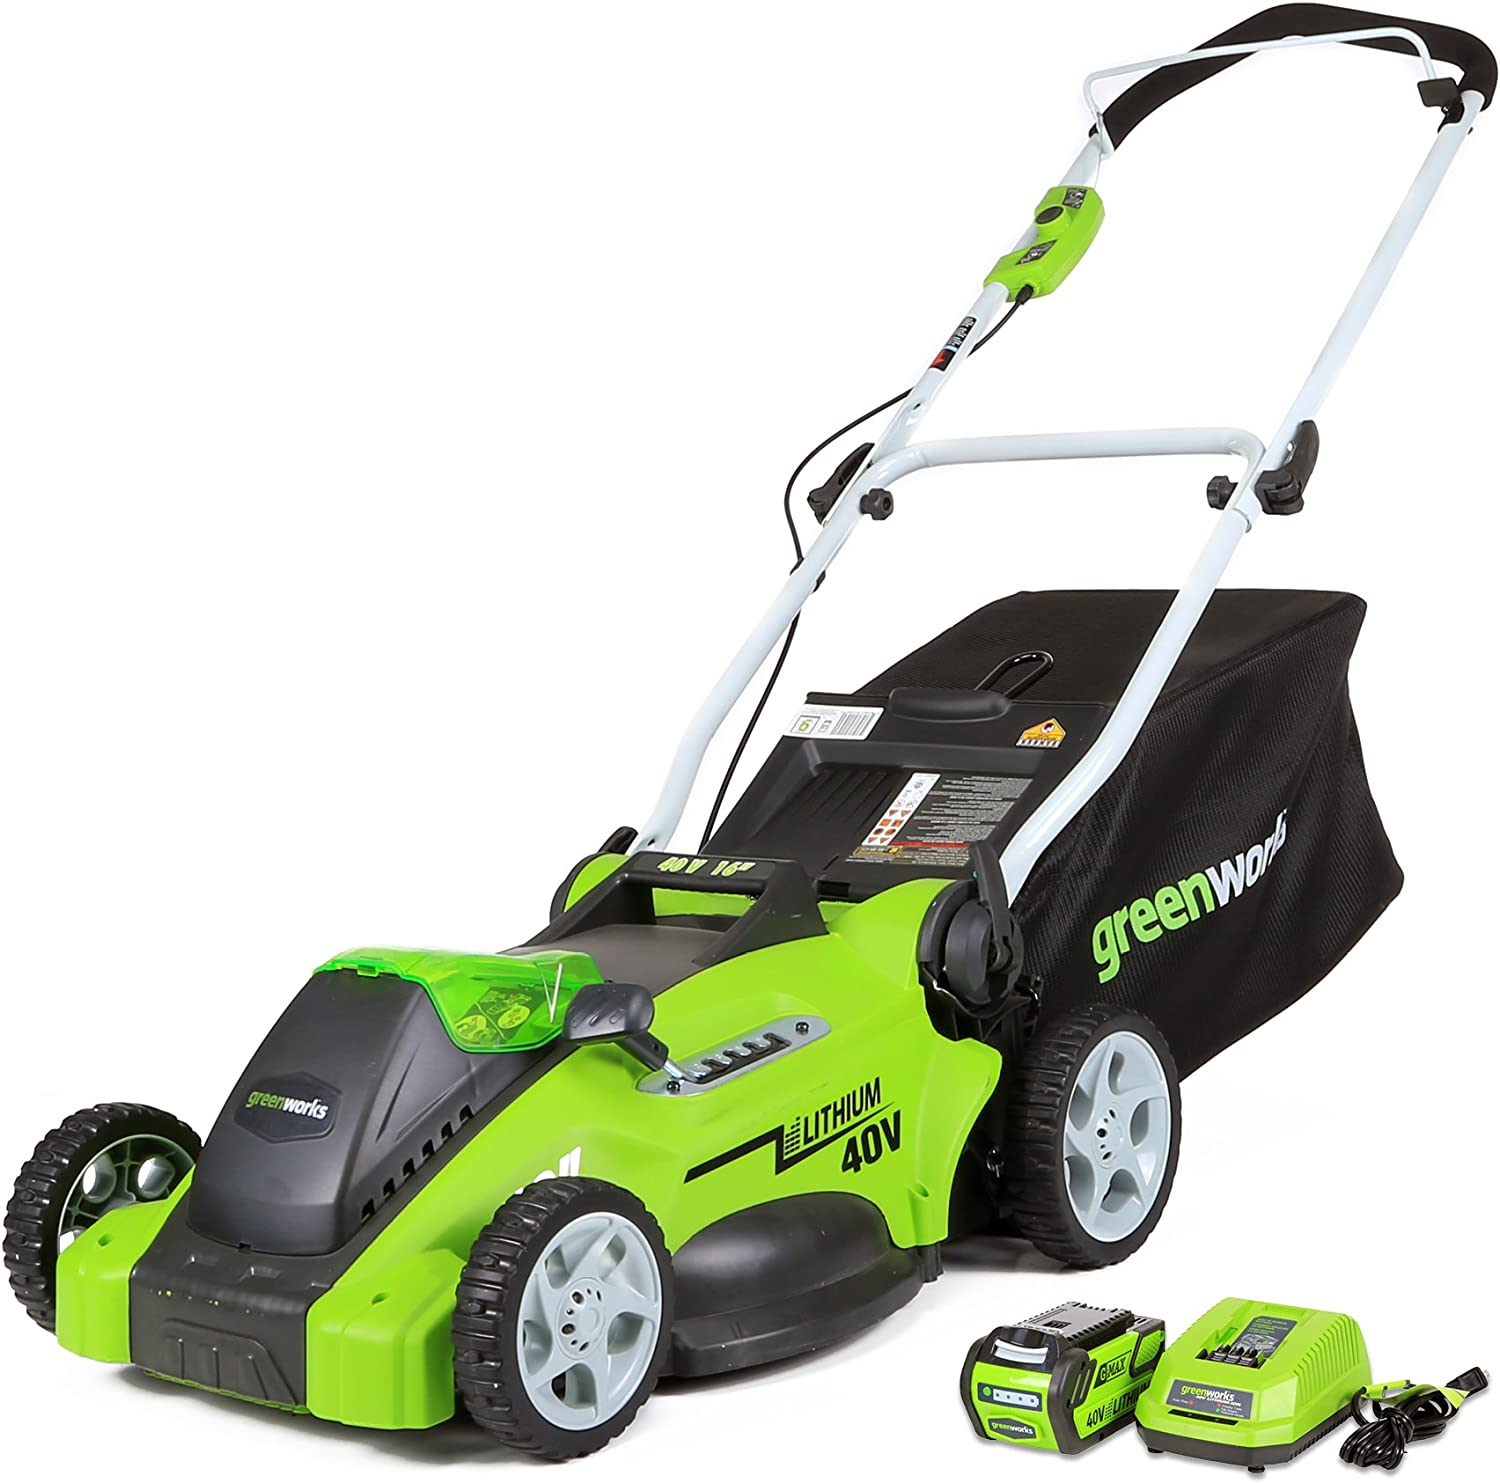 Amazon.com: Cortacésped GreenWorks G-MAX, 40V 4 AH Li ...